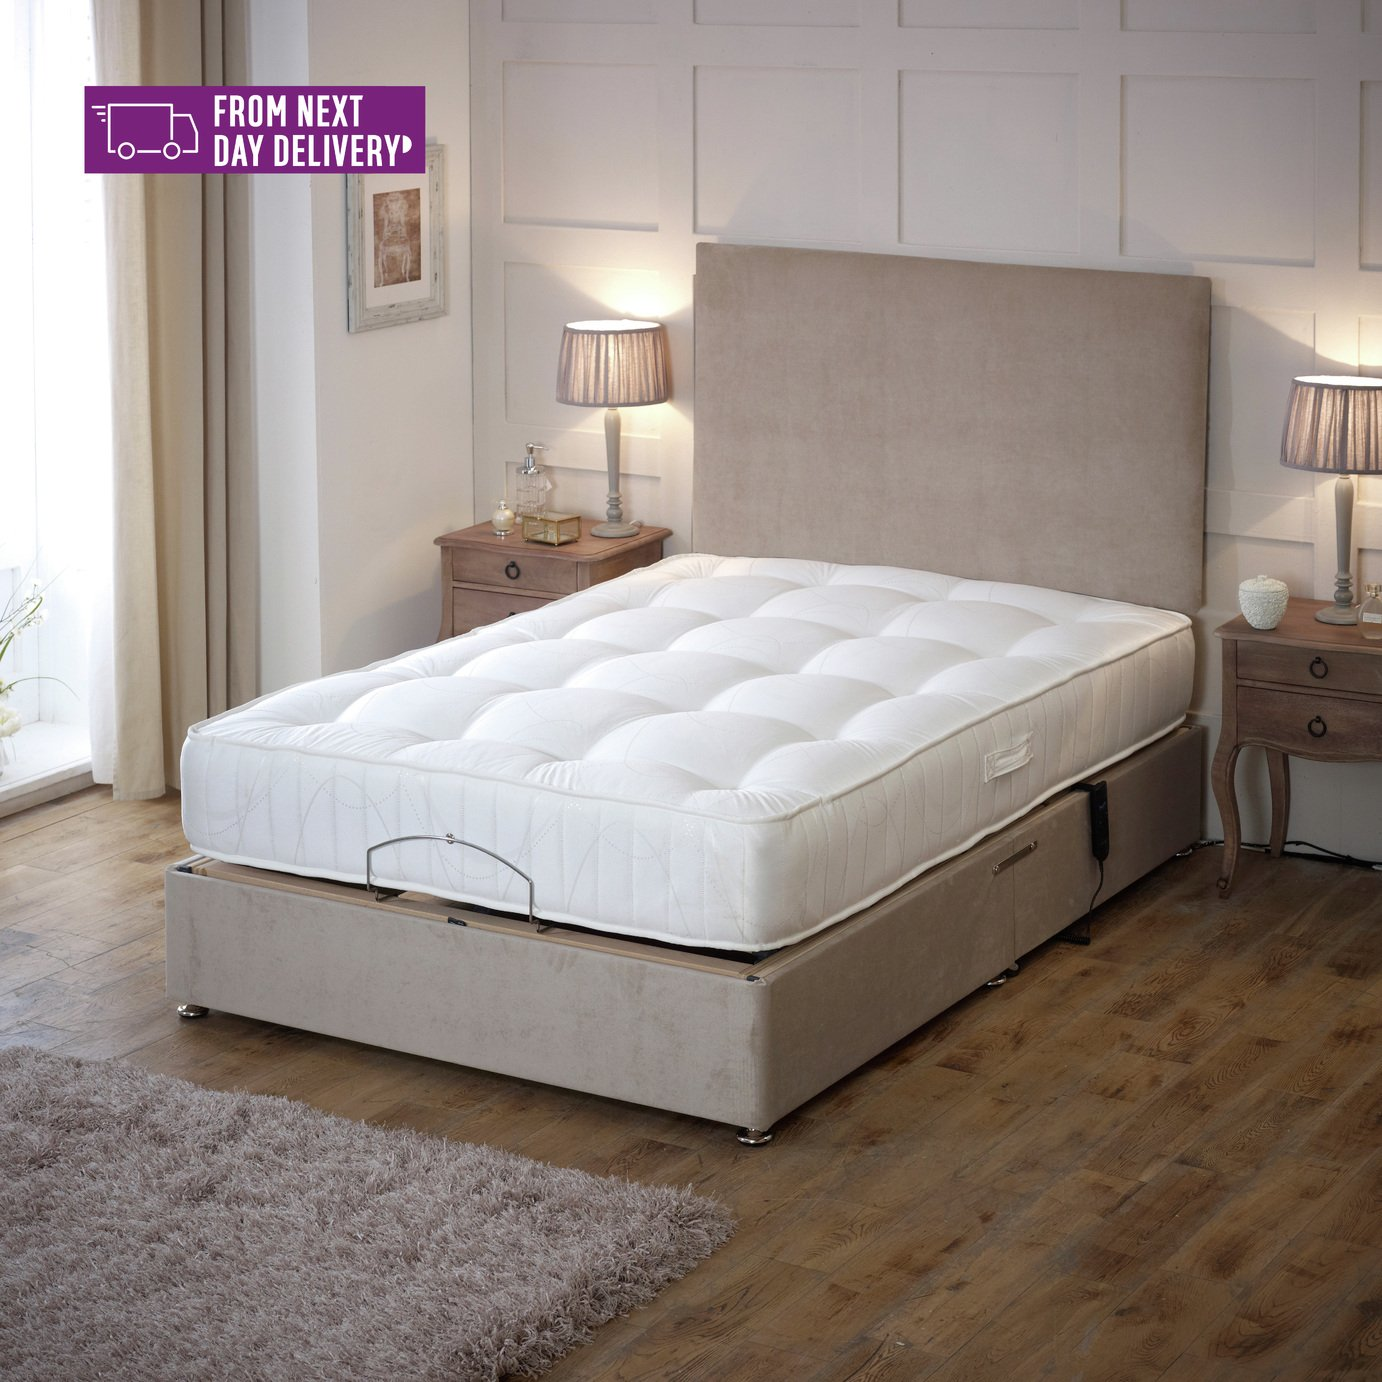 Royal Double Adjustable Bed with a Pocket Memory Mattress